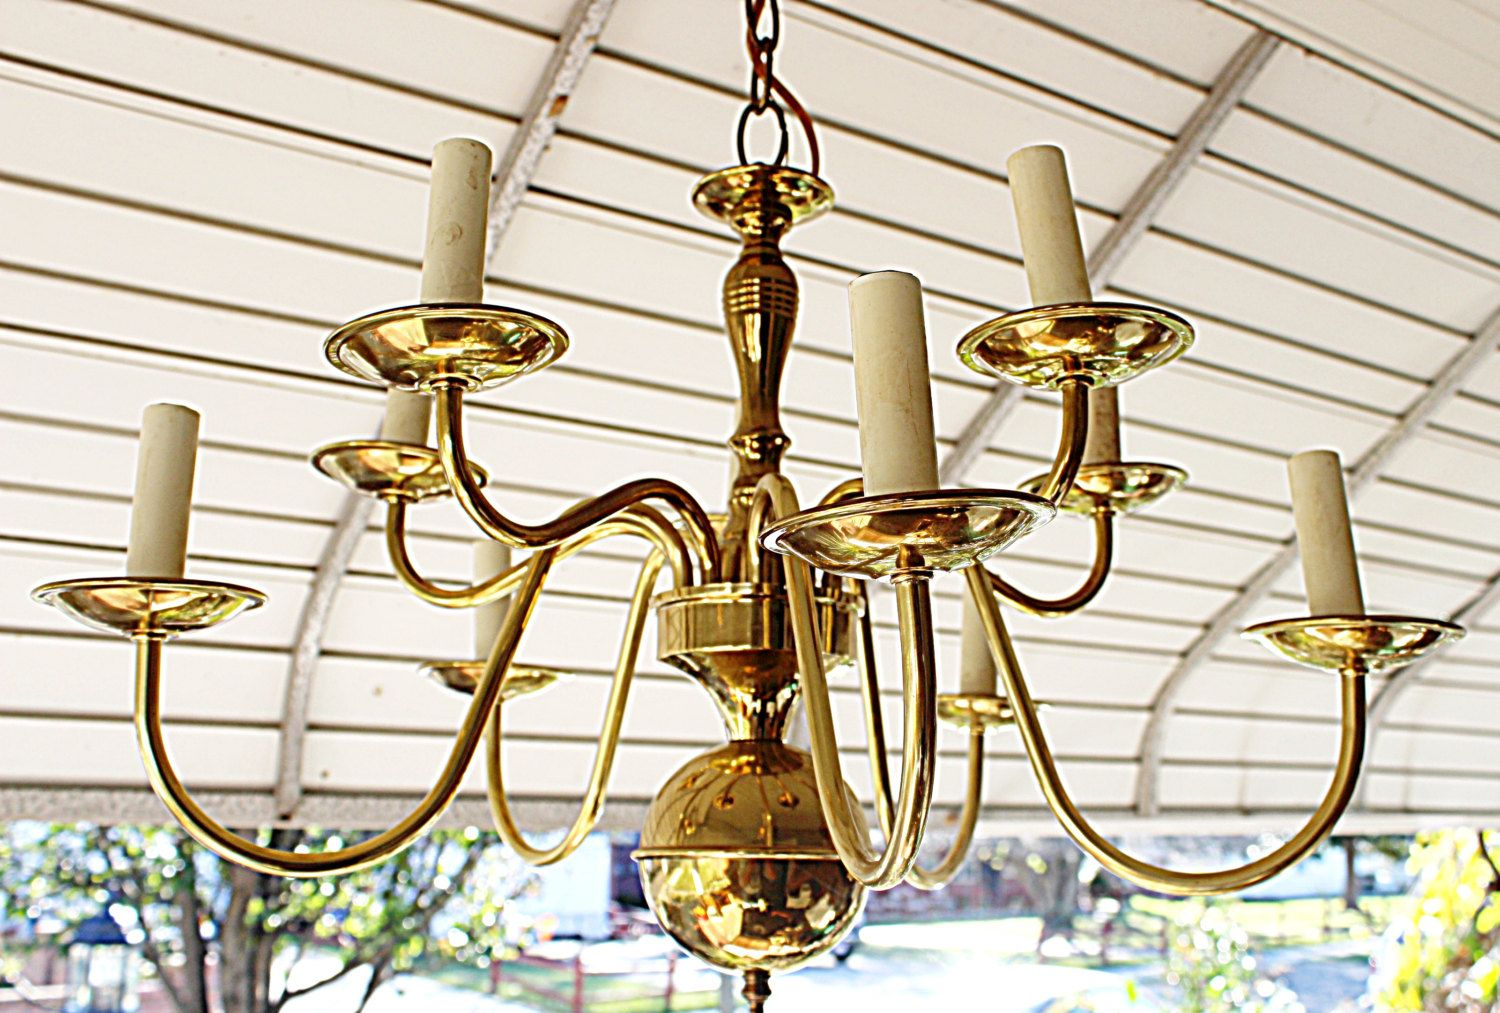 Antique Solid Brass 10 Arm Chandelier Williamsburg Exquisite No Damage Positively Lovely Long Chain 3 1 2 Quot Arm Chandelier Vintage Lamps Chandelier